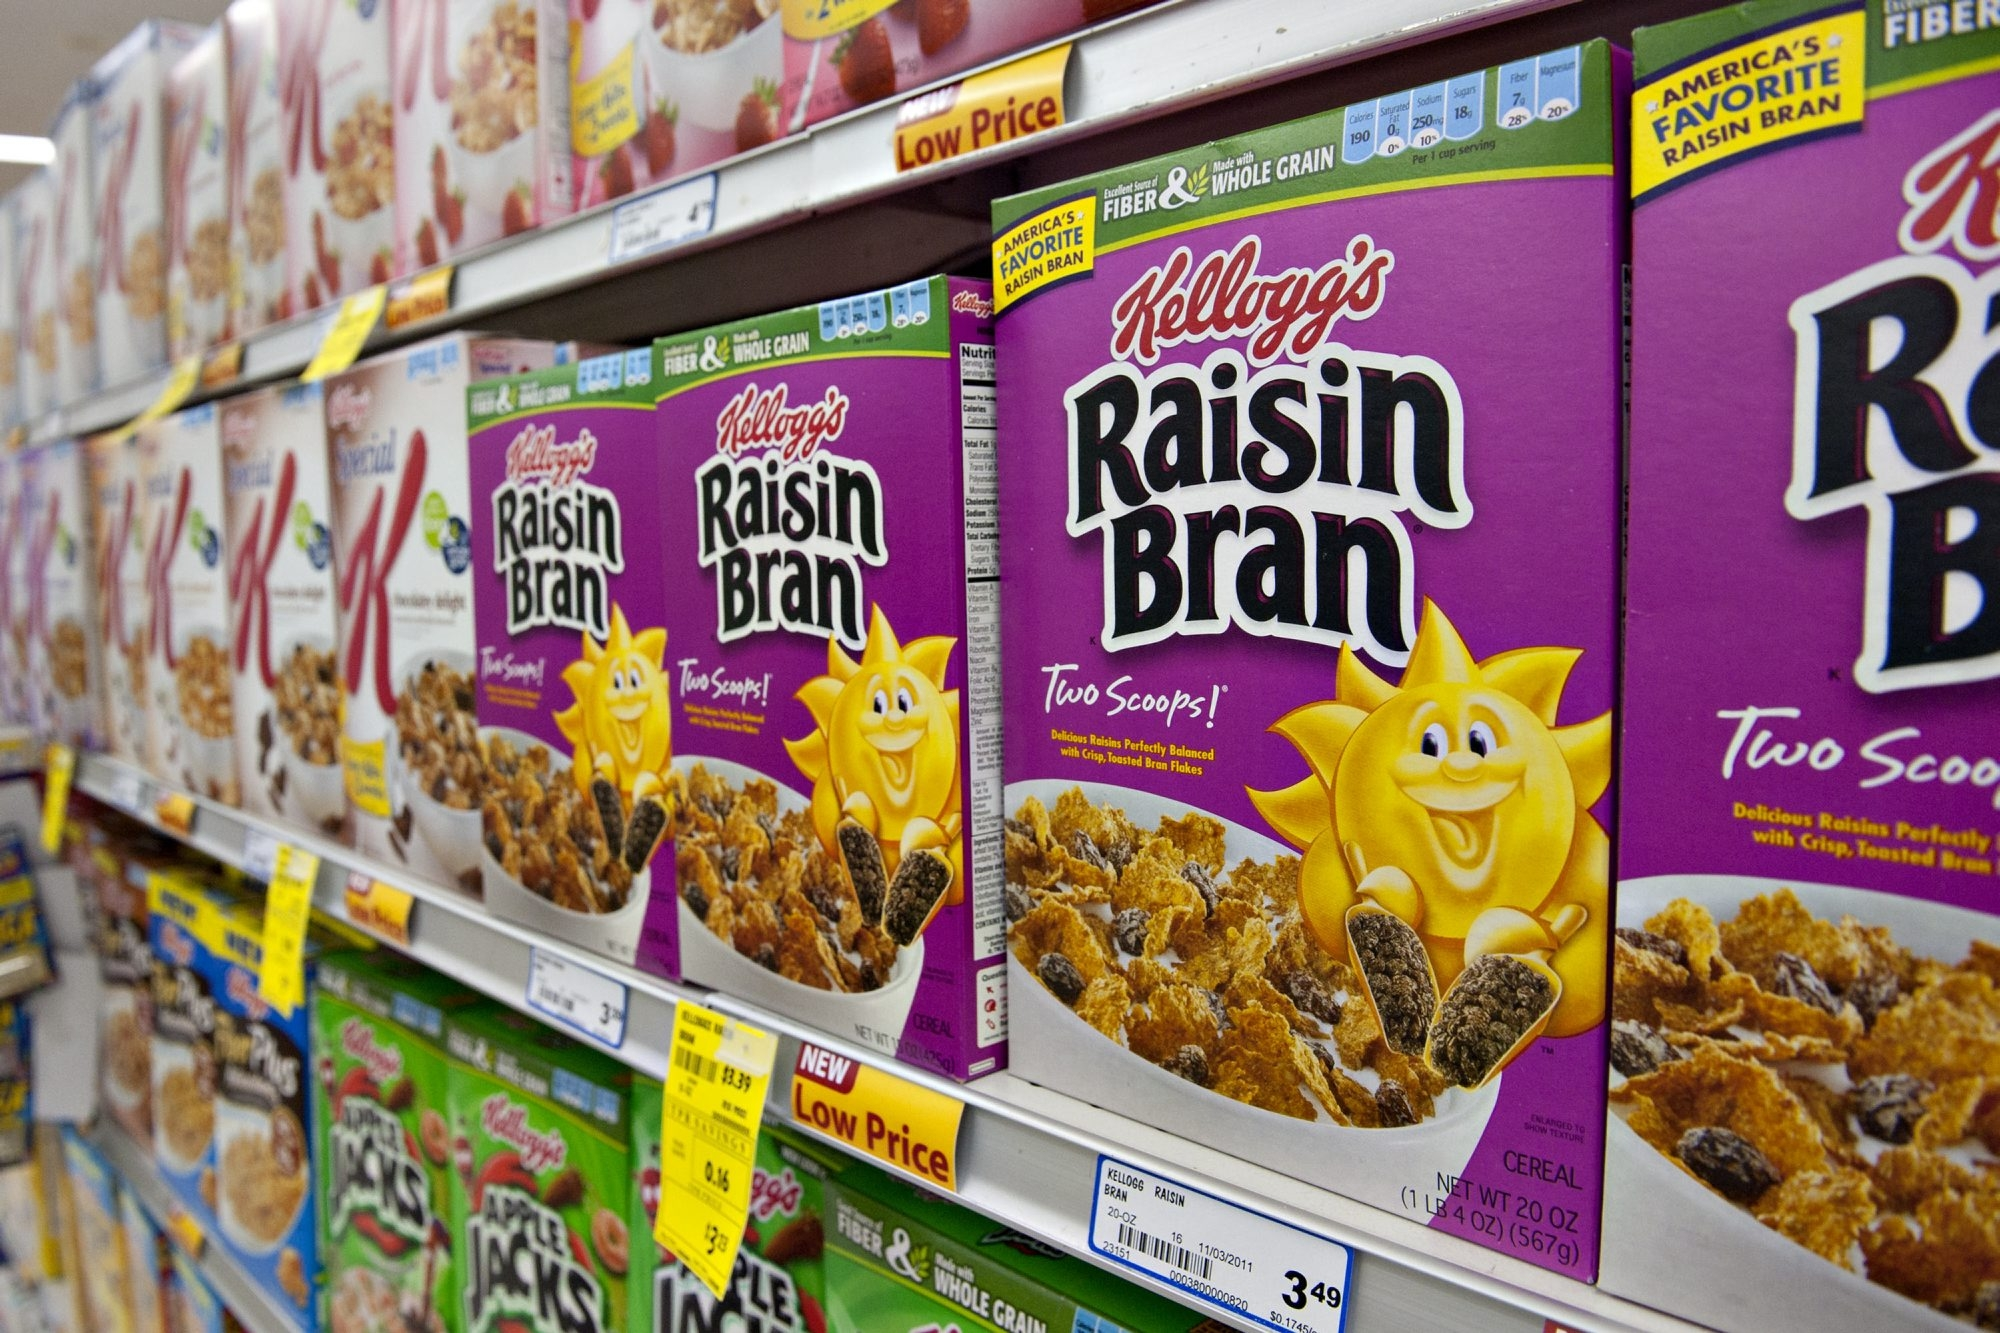 Kellogg Co. Raisin Bran brand breakfast cereal sits on display in a supermarket in Princeton, Illinois, U.S., on Friday, Jan. 27, 2012. Kellogg Co. will release its 2011 fourth quarter earnings on Feb. 2, 2012. Photographer: Daniel Acker/Bloomberg